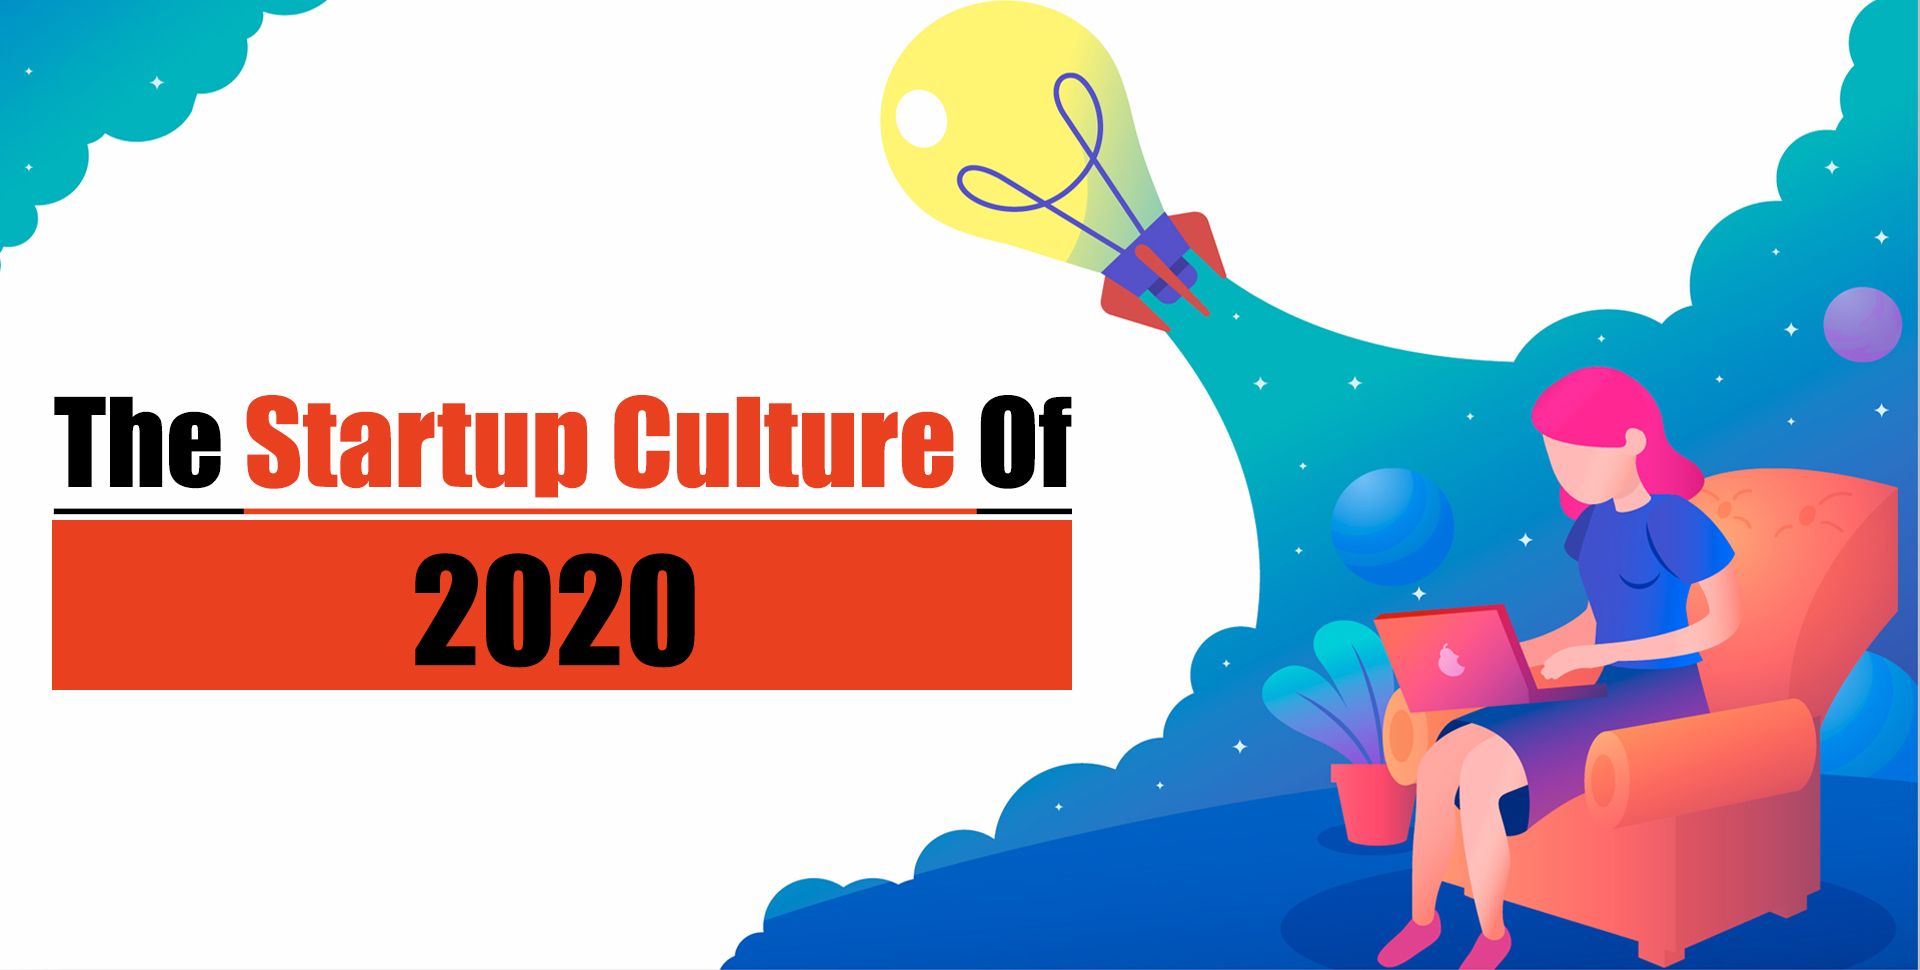 The Startup Culture Of 2020